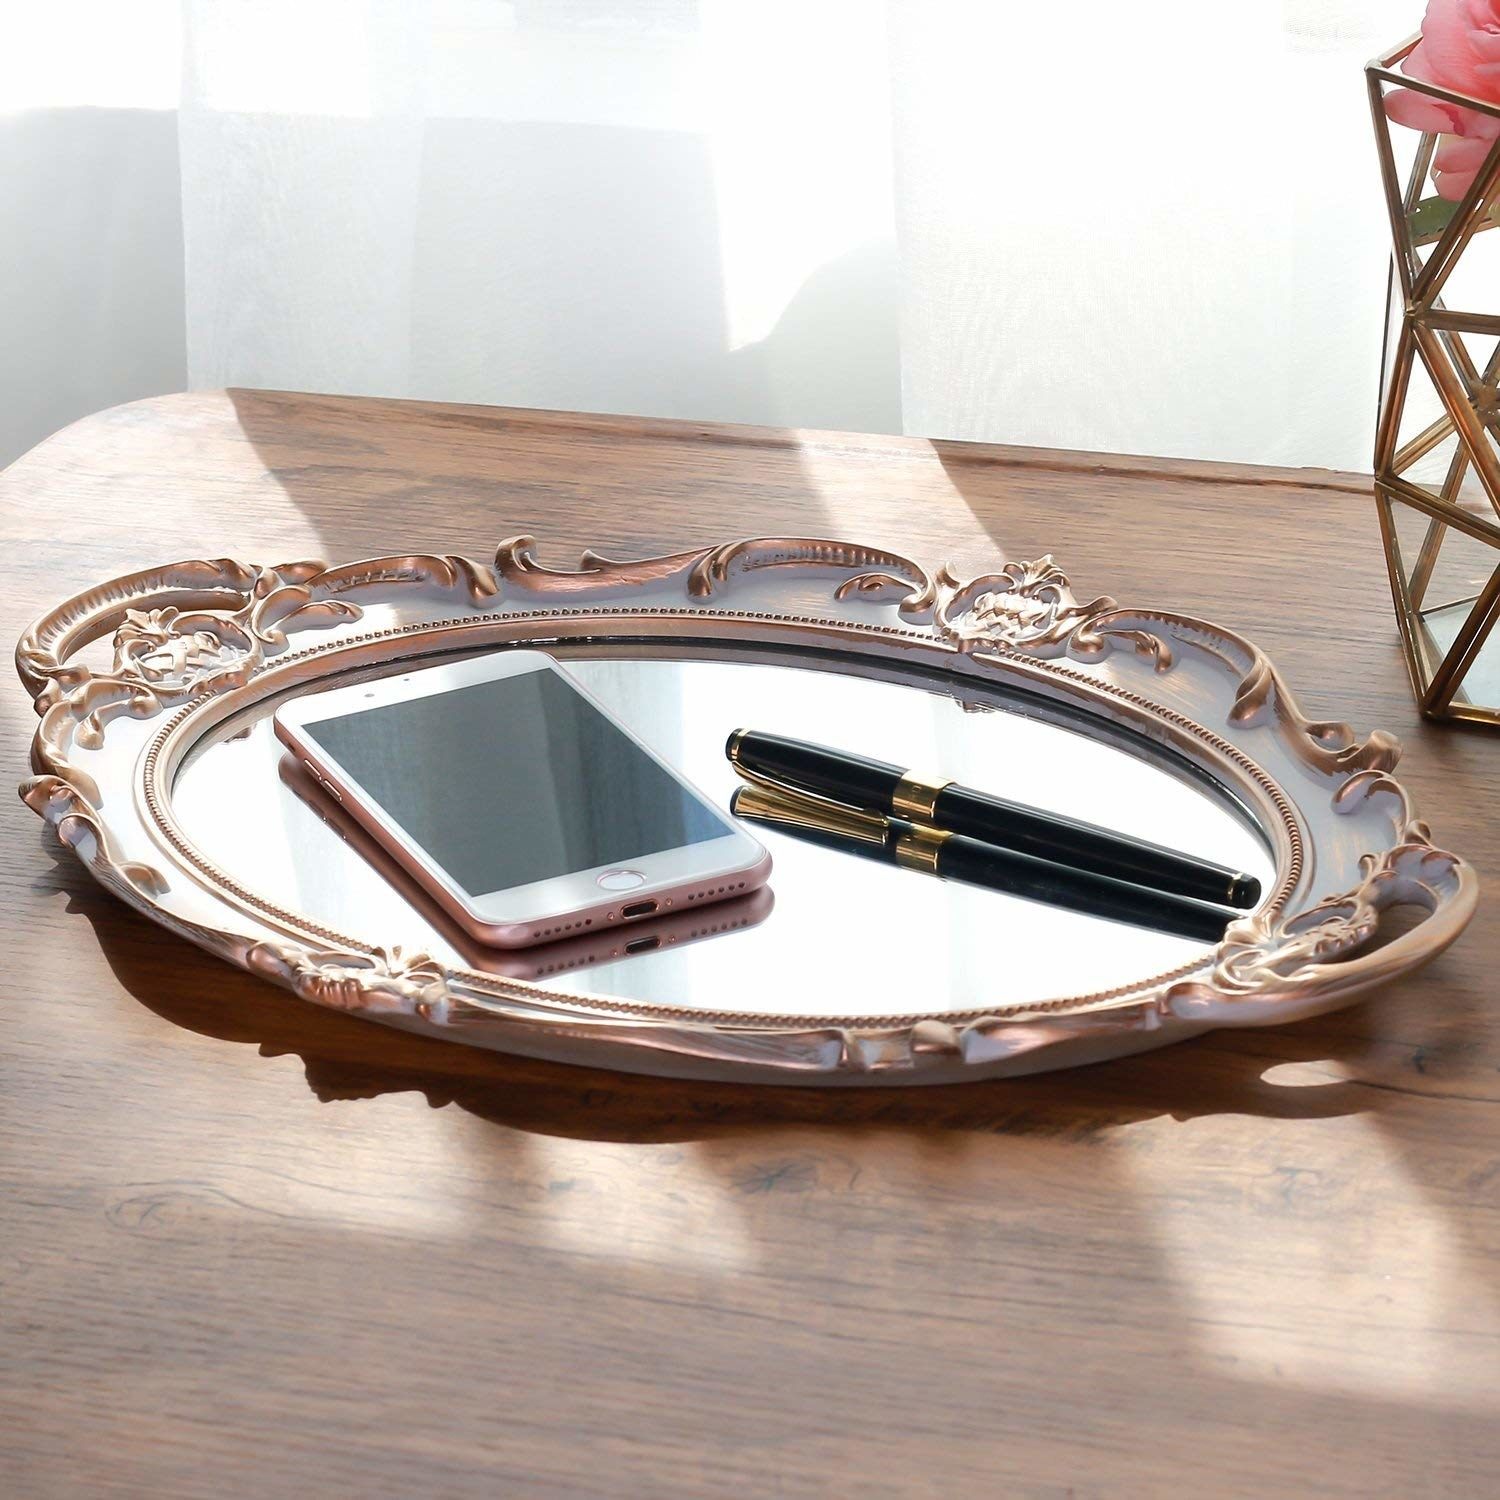 The mirror tray with a phone and a pen on it